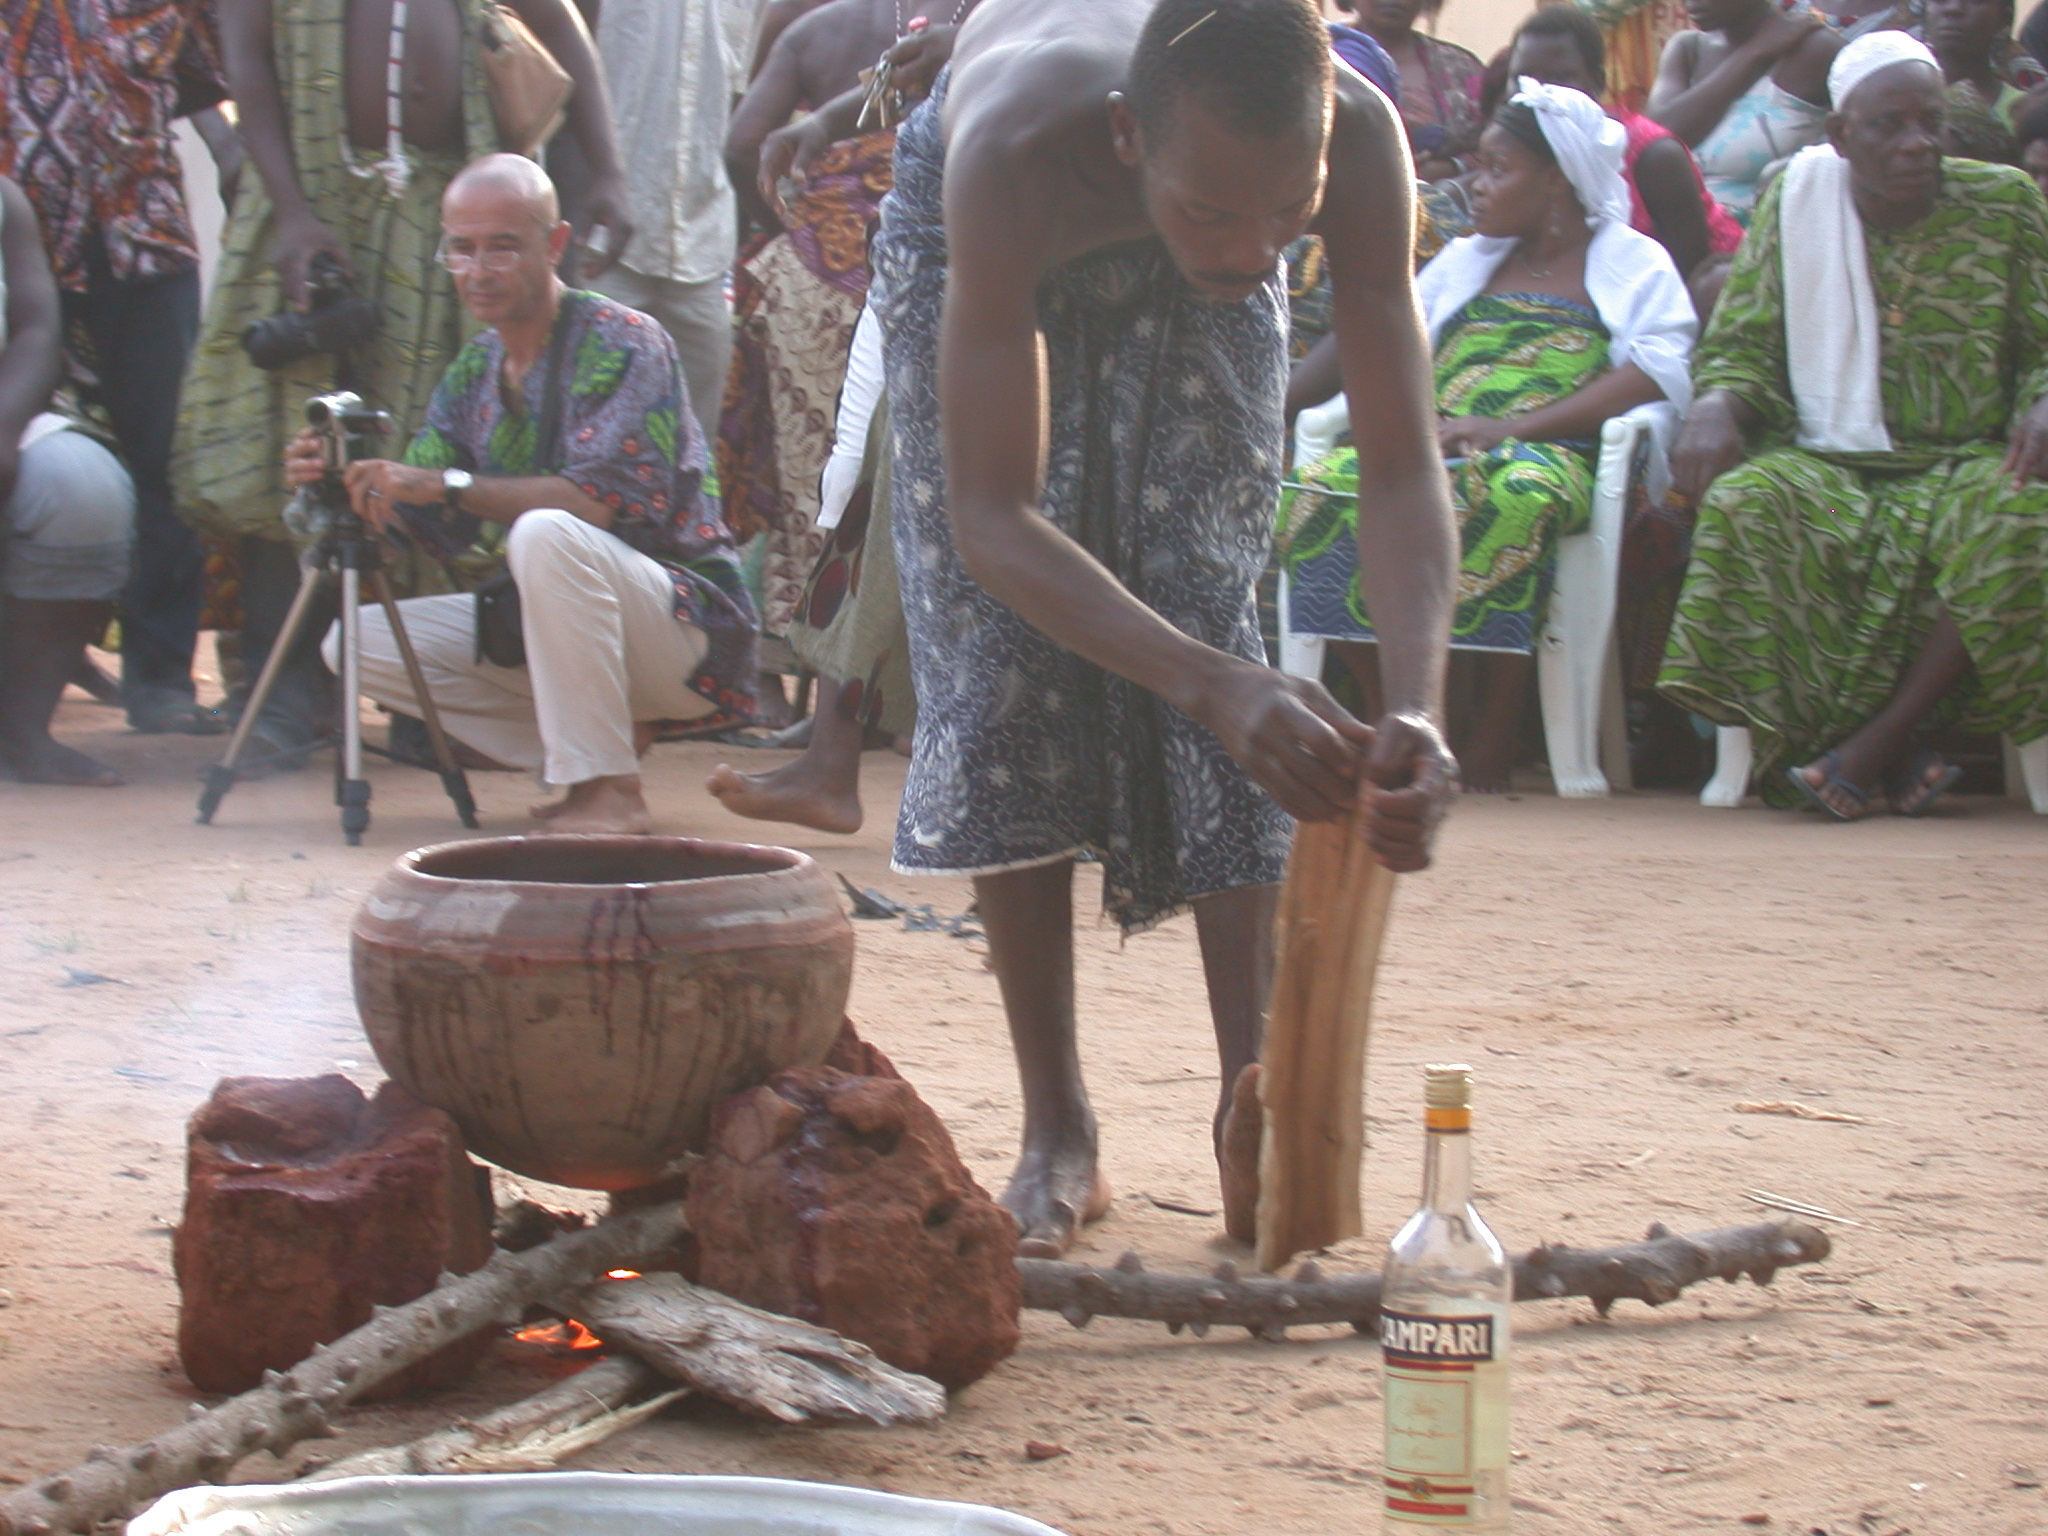 Preparing Fire for Cooking of Sacrificial Meat, Vodun Ritual, Ouidah, Benin